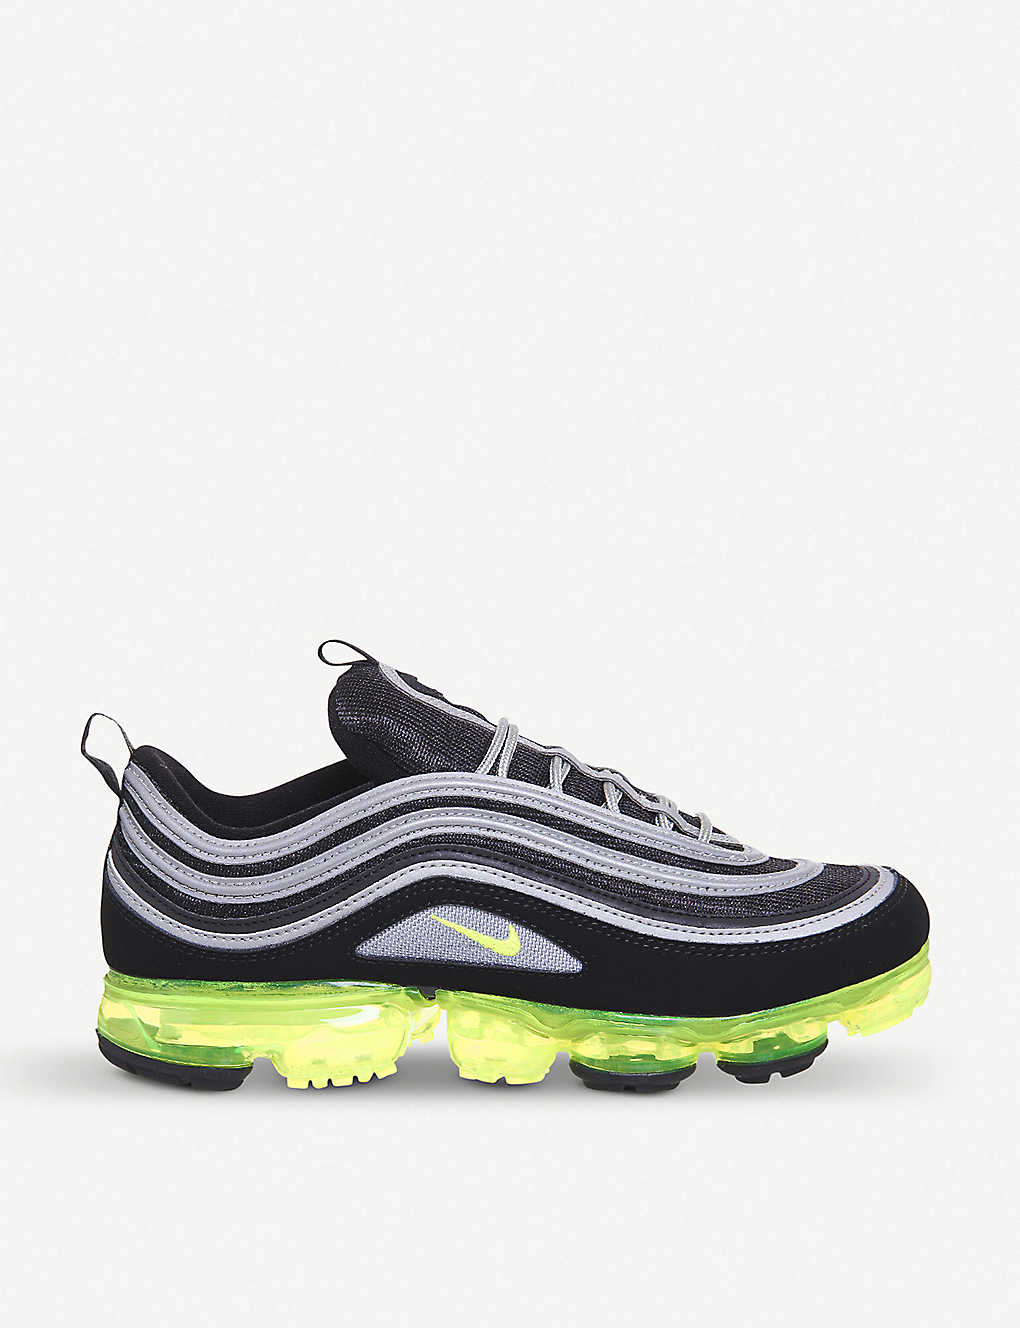 55fc6a36a0 NIKE - Air Vapormax 97 leather and mesh trainers | Selfridges.com